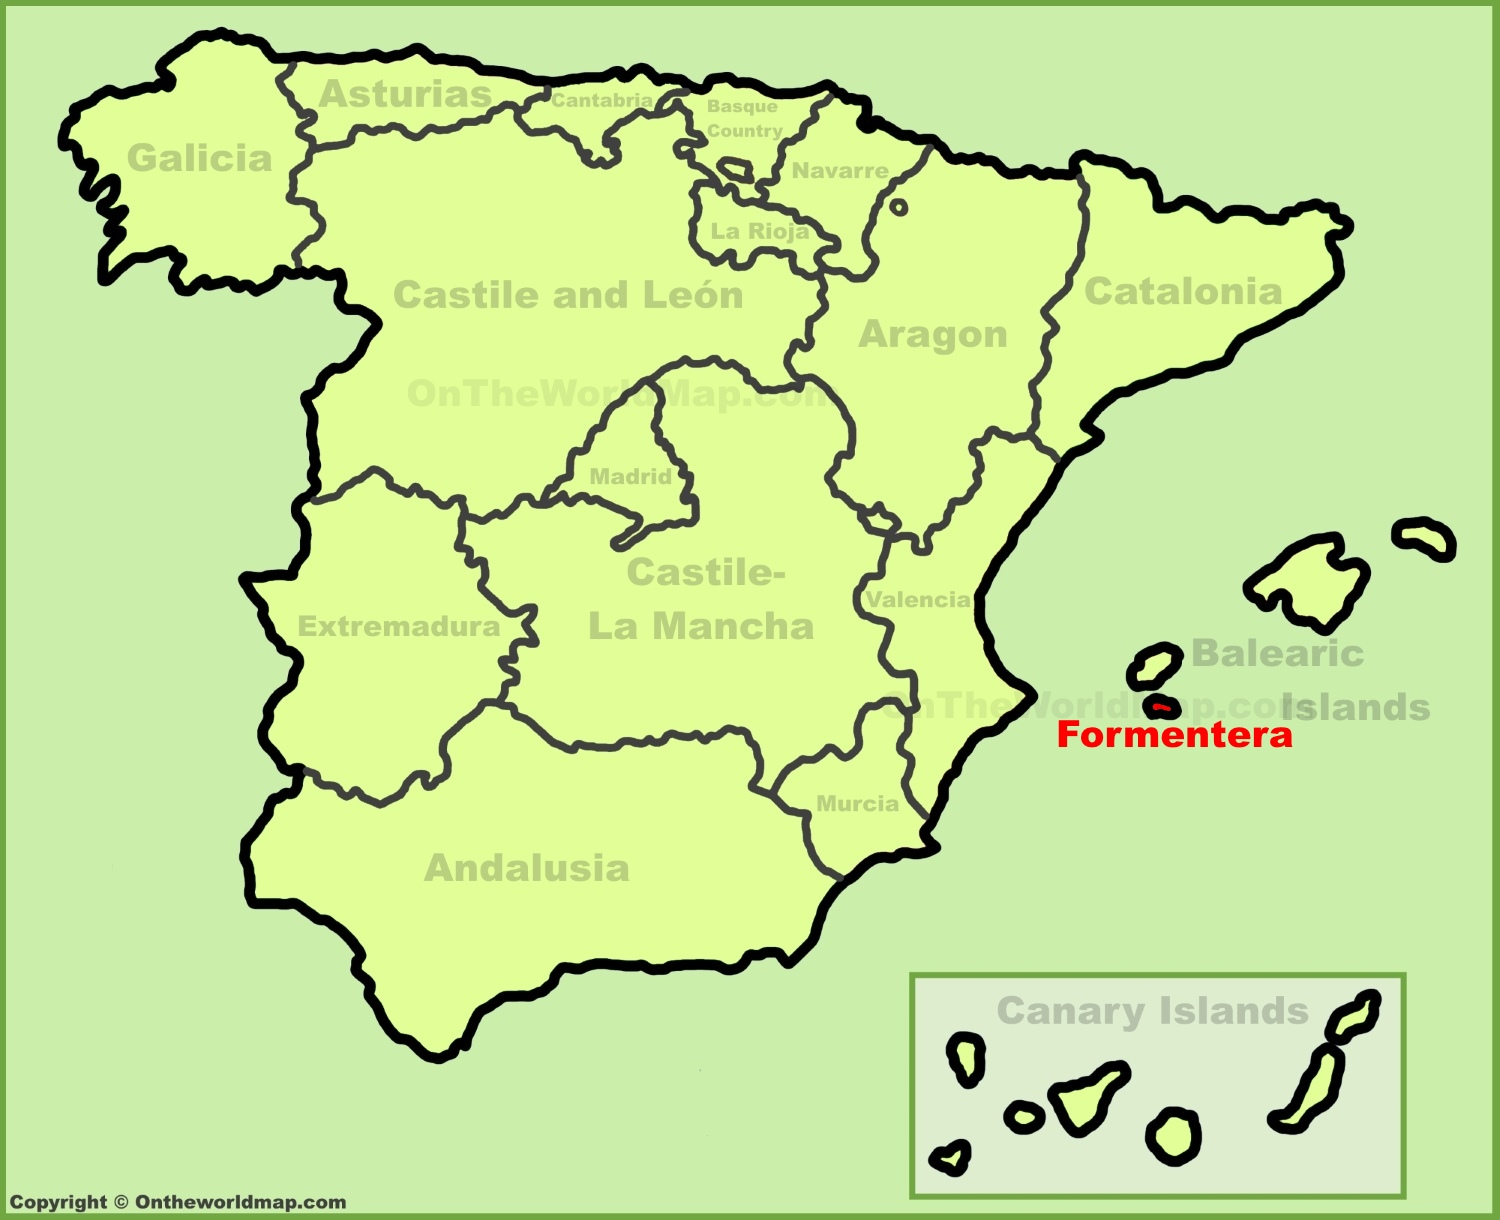 Formentera location on the Spain map